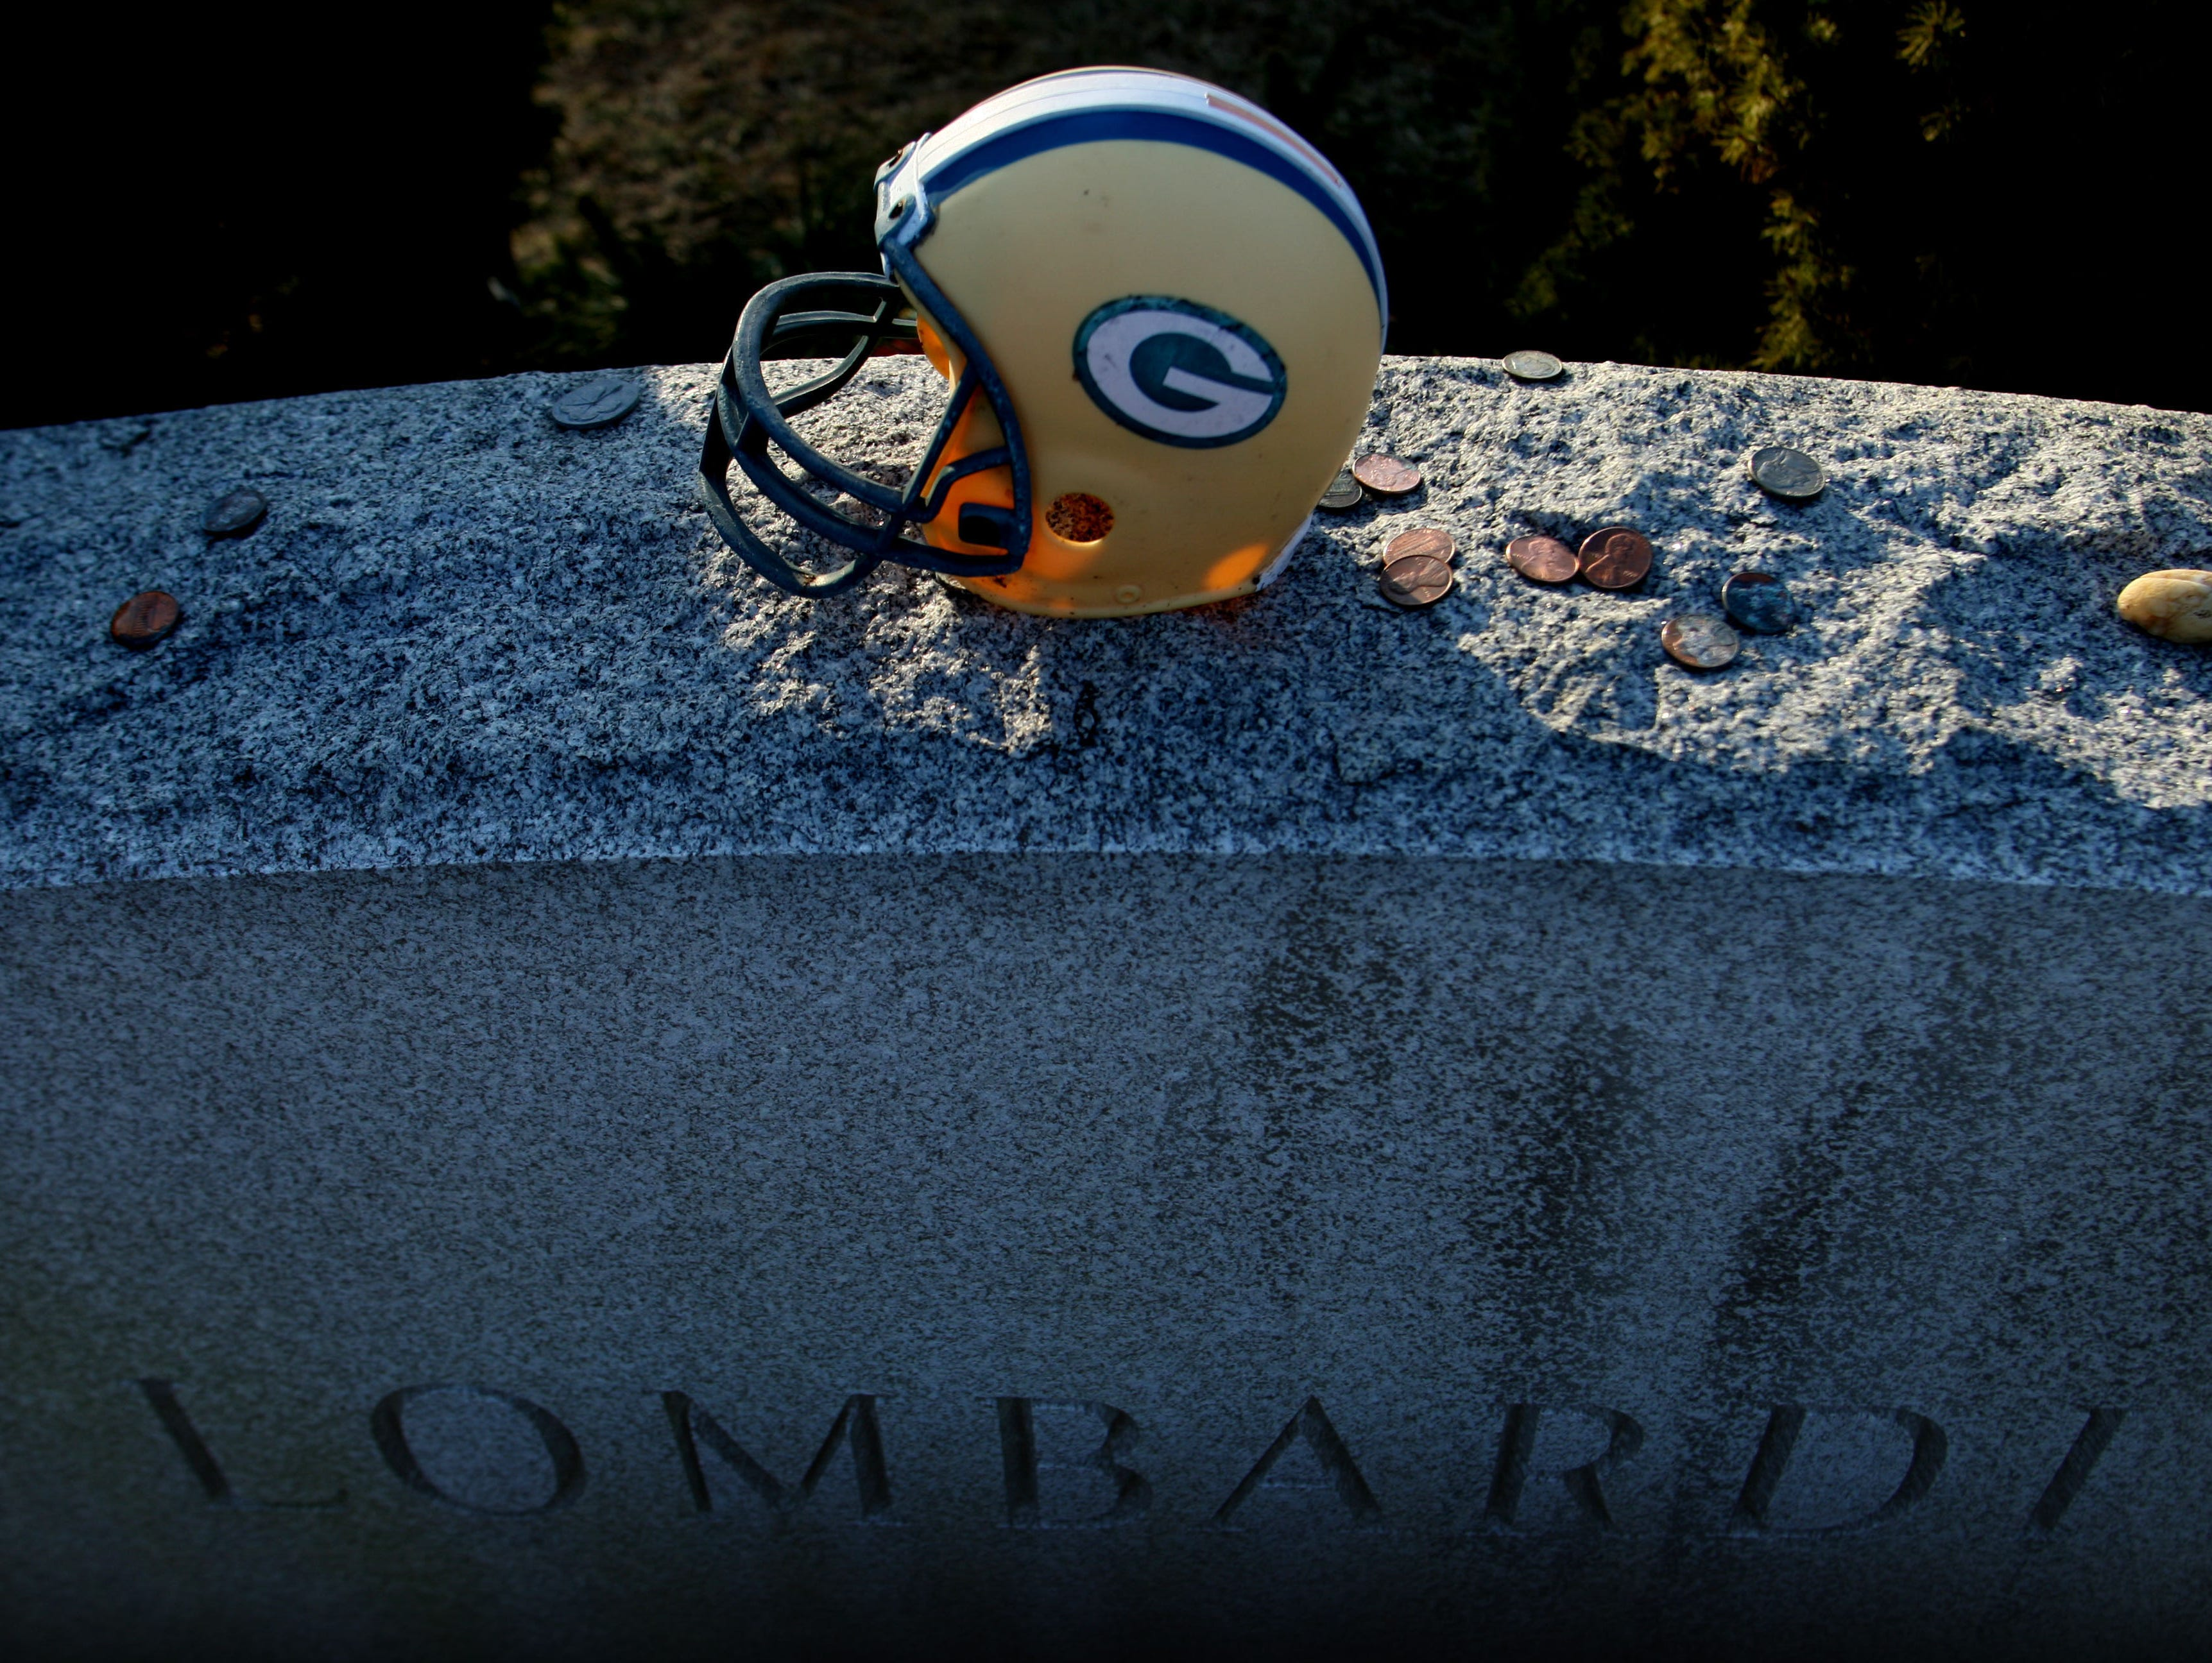 The grave of former Packers coach Vince Lombardi at Mount Olivet Cemetery in Middletown.